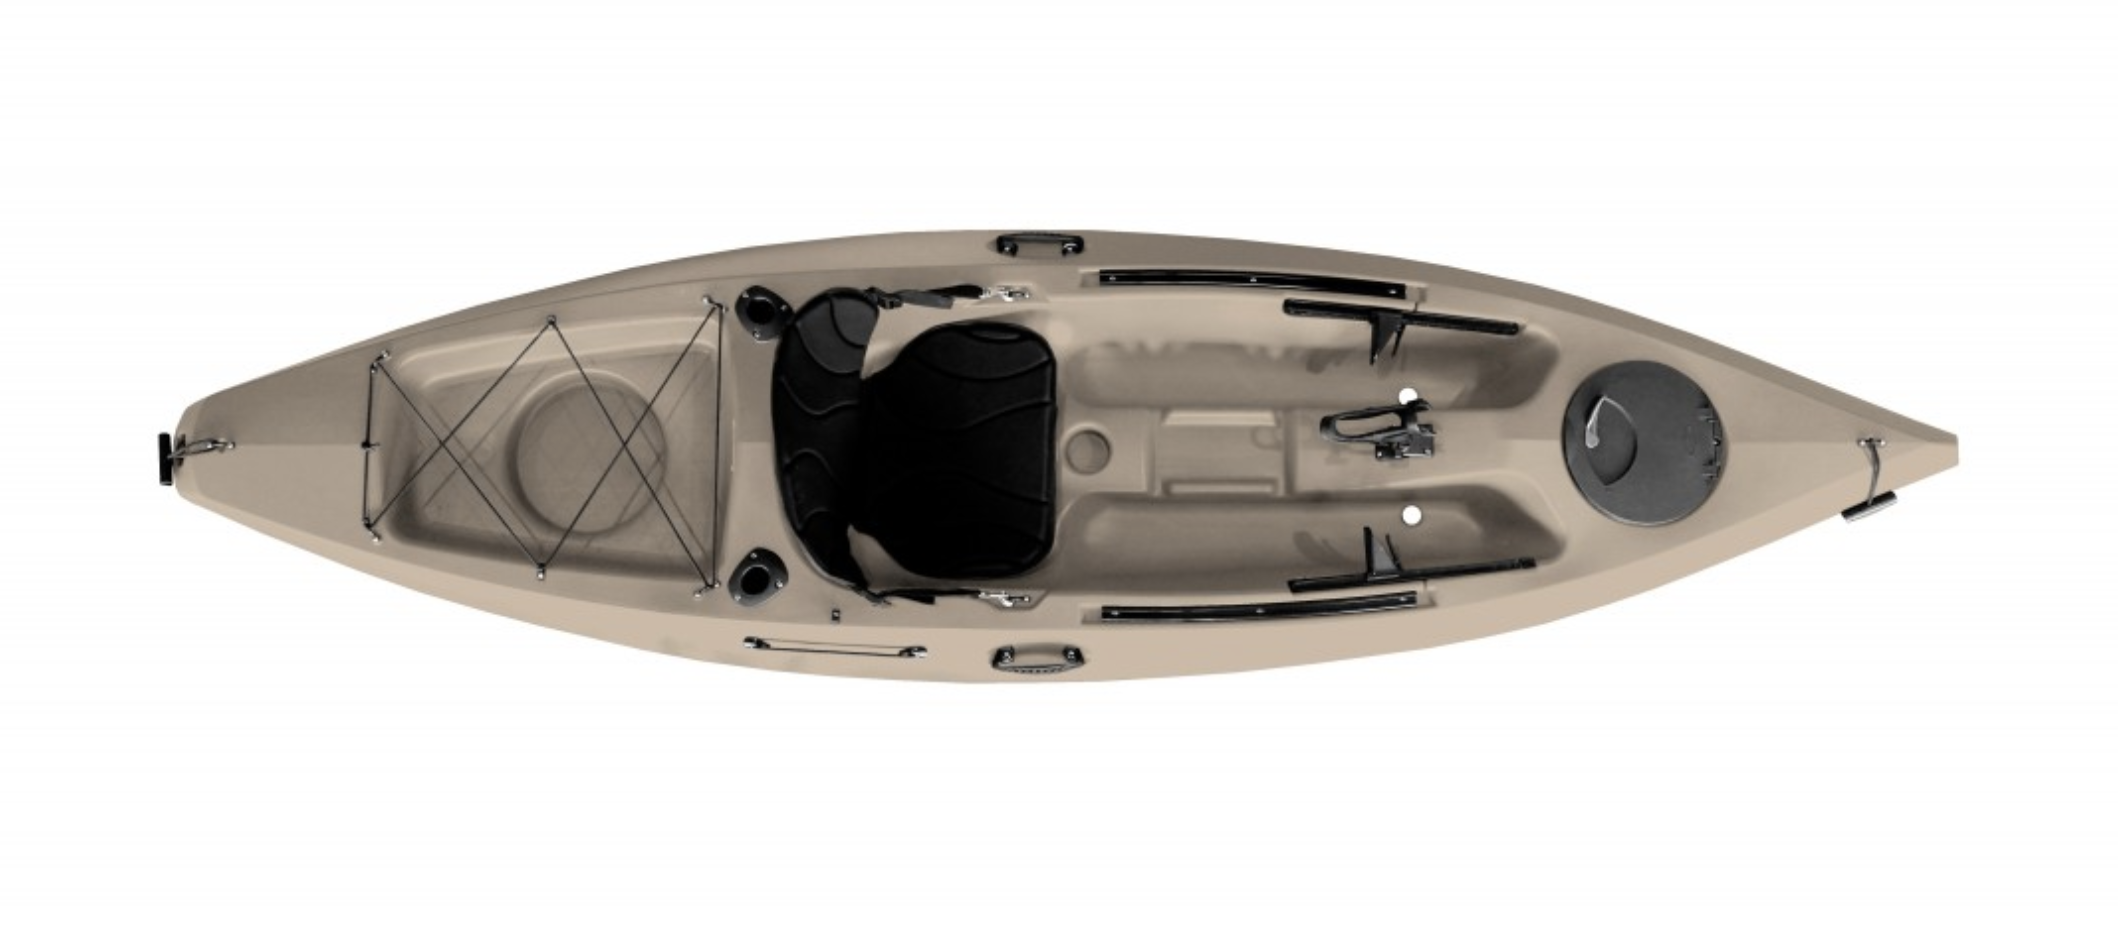 Kayaks: Cayman 124 by Future Beach - Image 2426